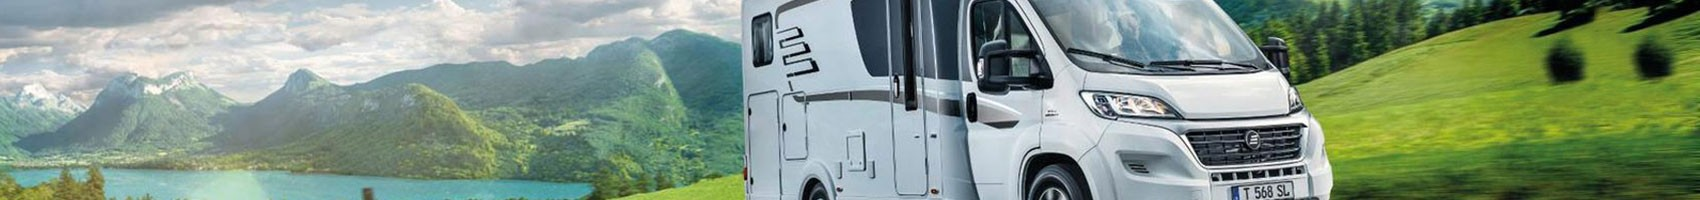 Your Guide to Motorhome Weight Limits